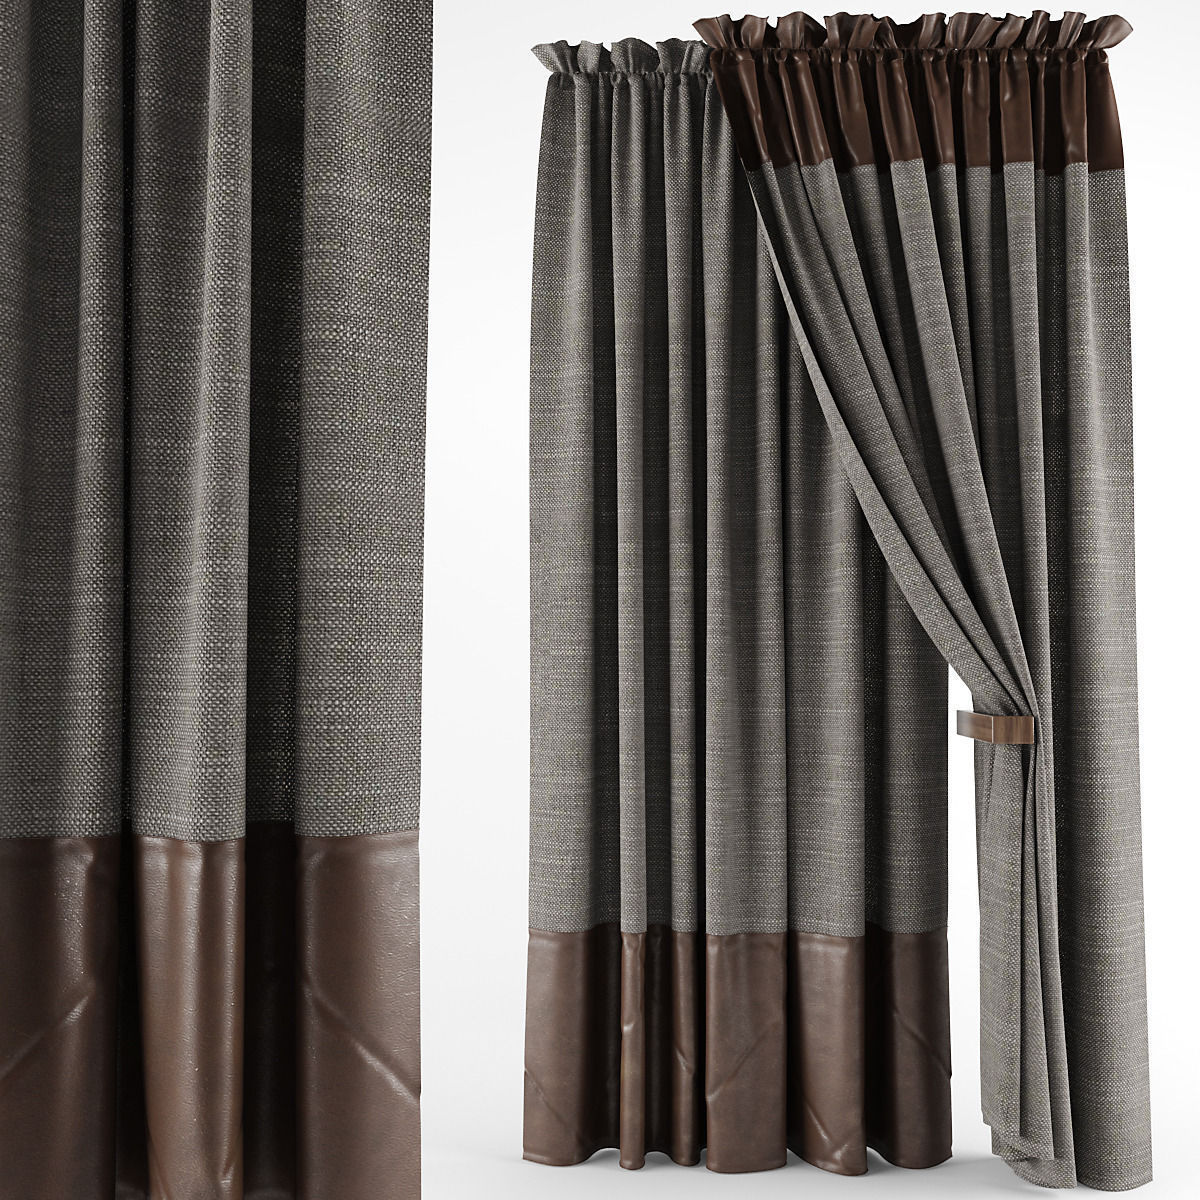 Leather Curtains 3d Model Max Obj 1